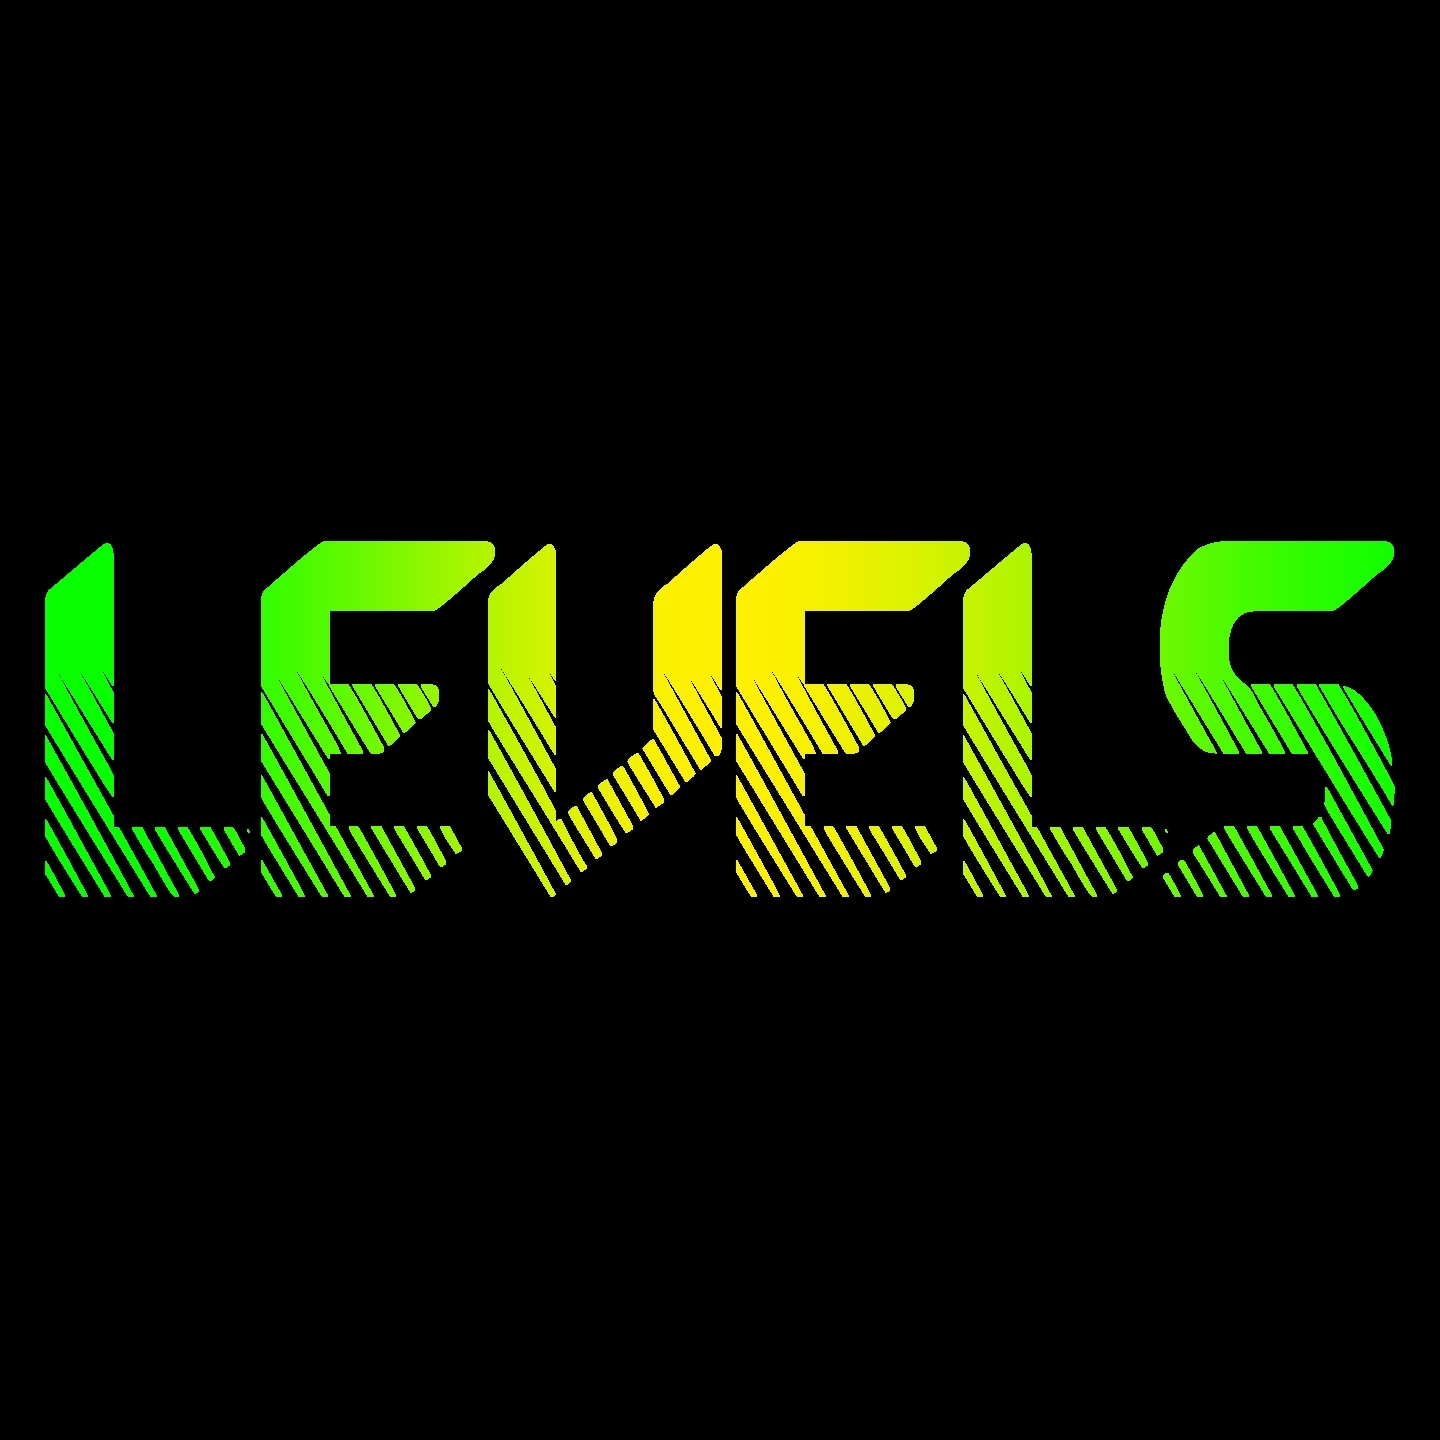 Tribute to Avicii: Levels